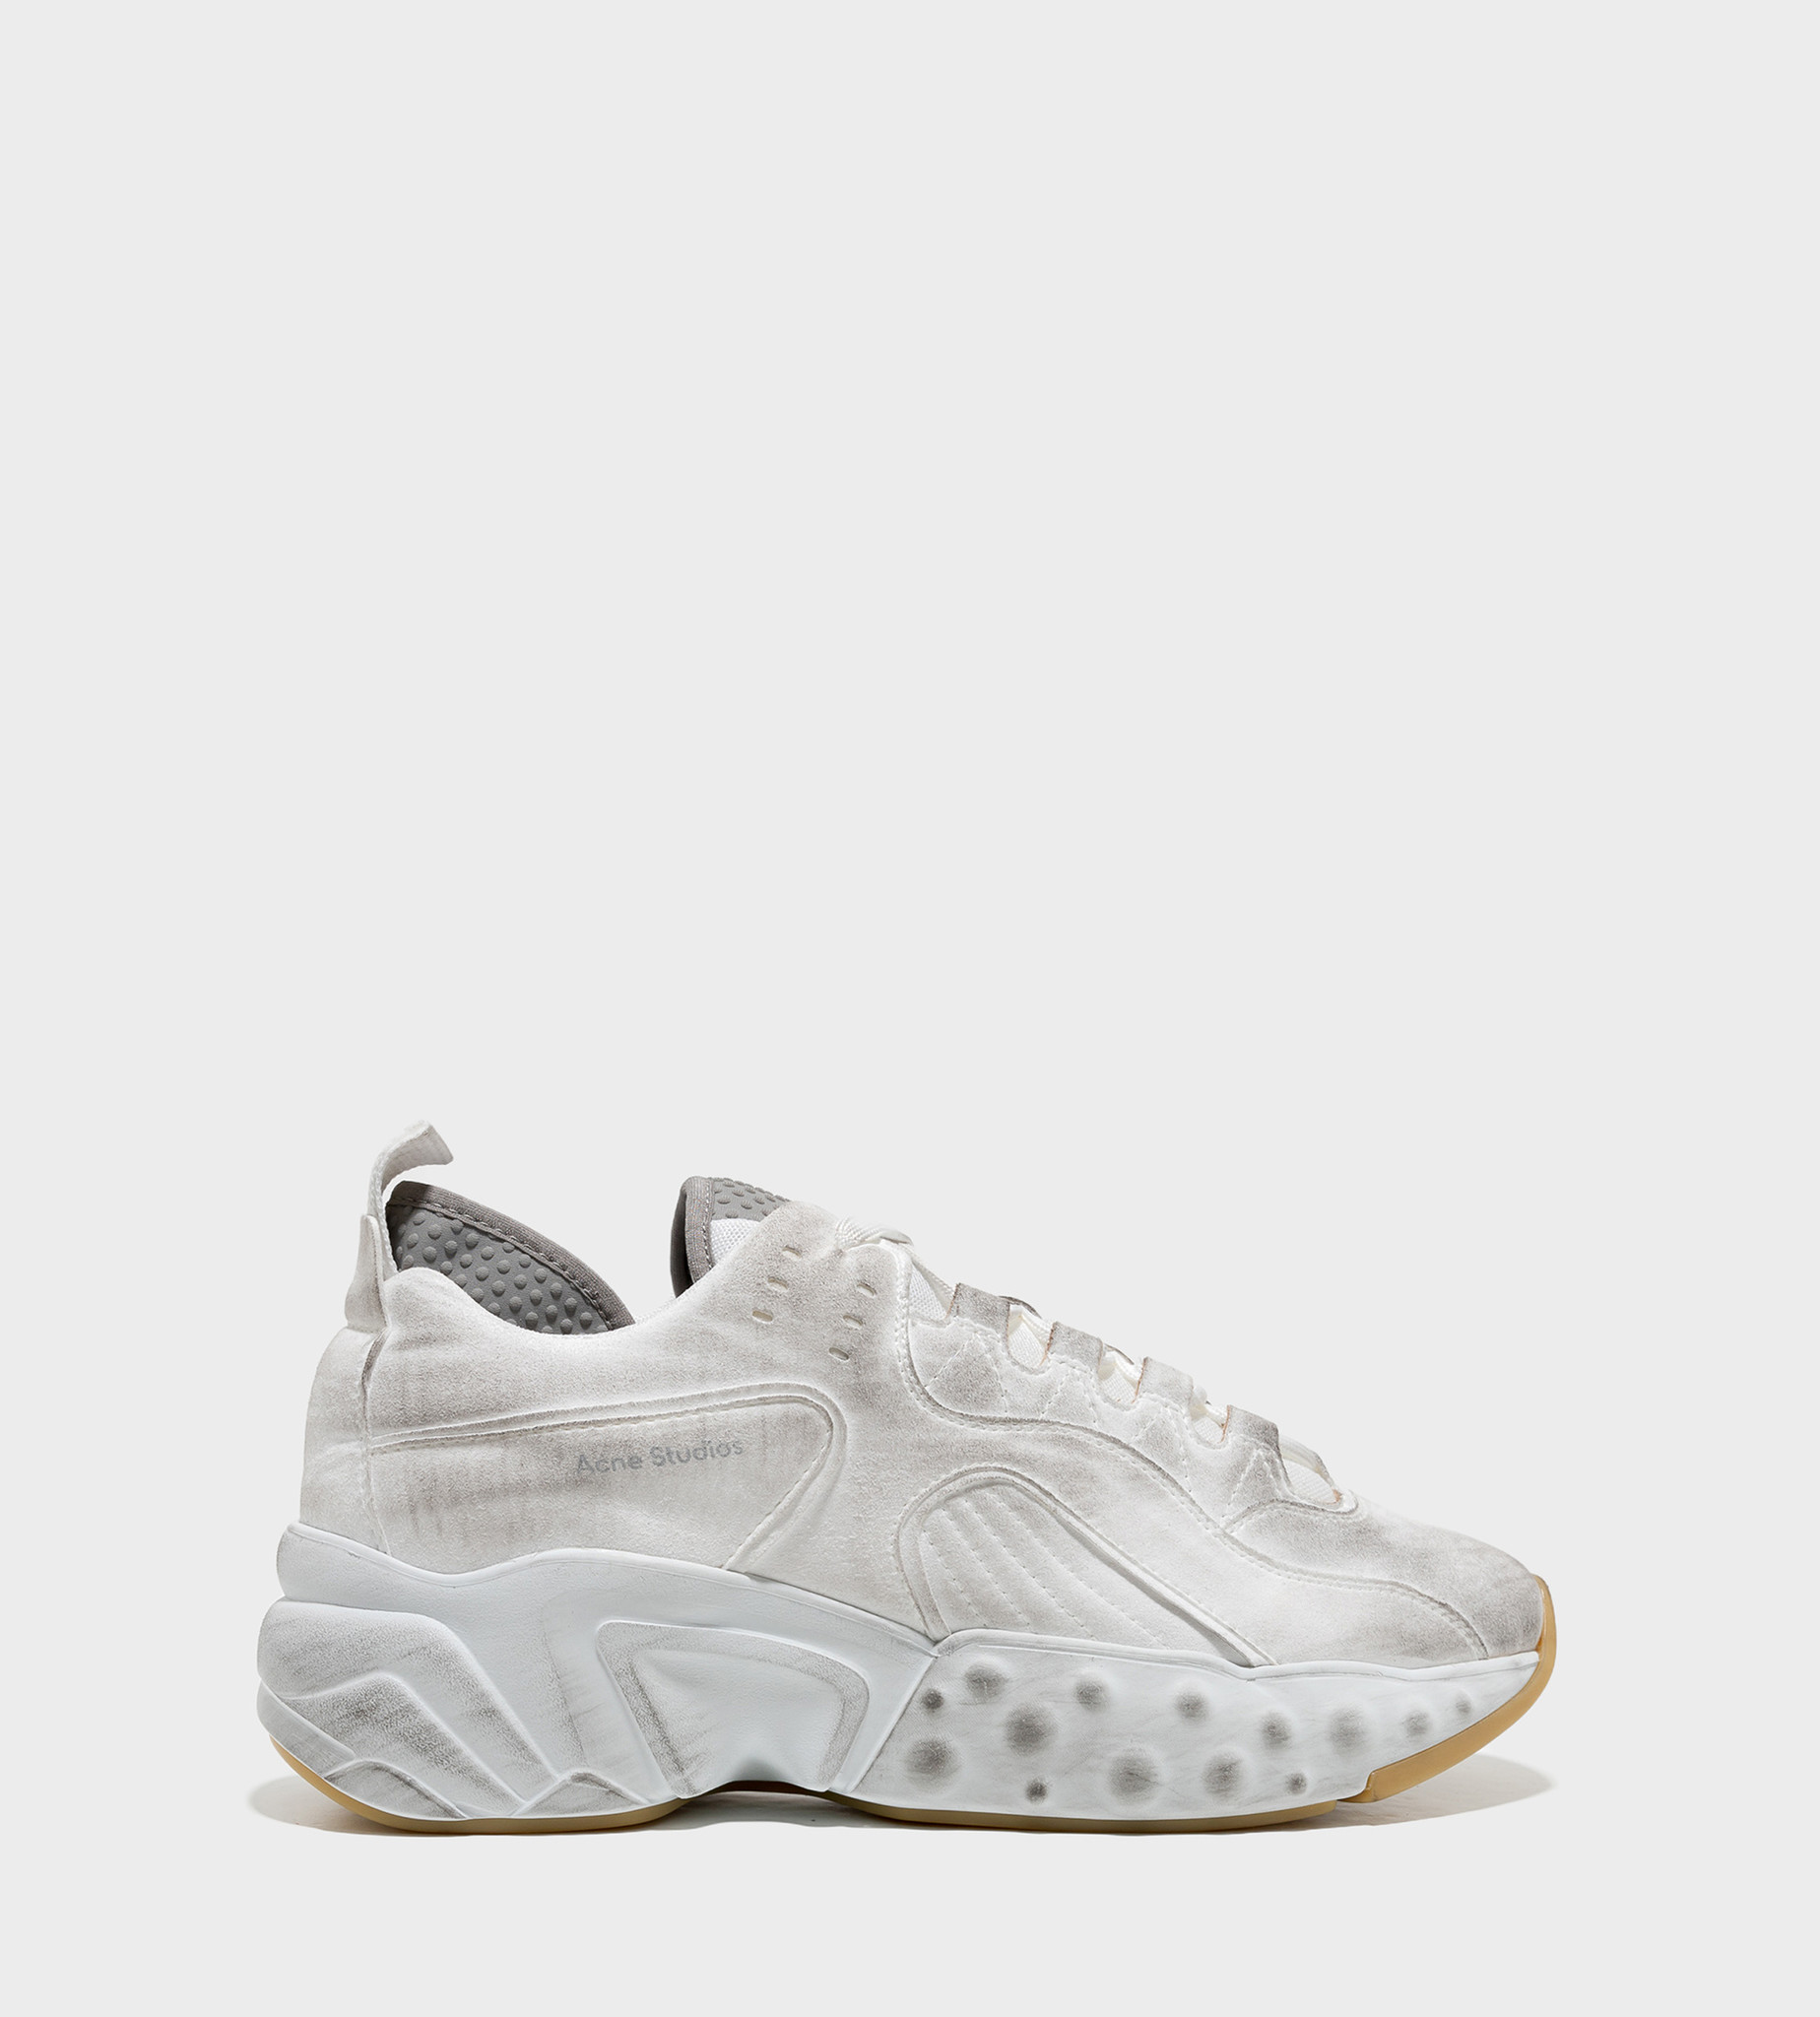 ACNE STUDIOS Distressed Sneakers White